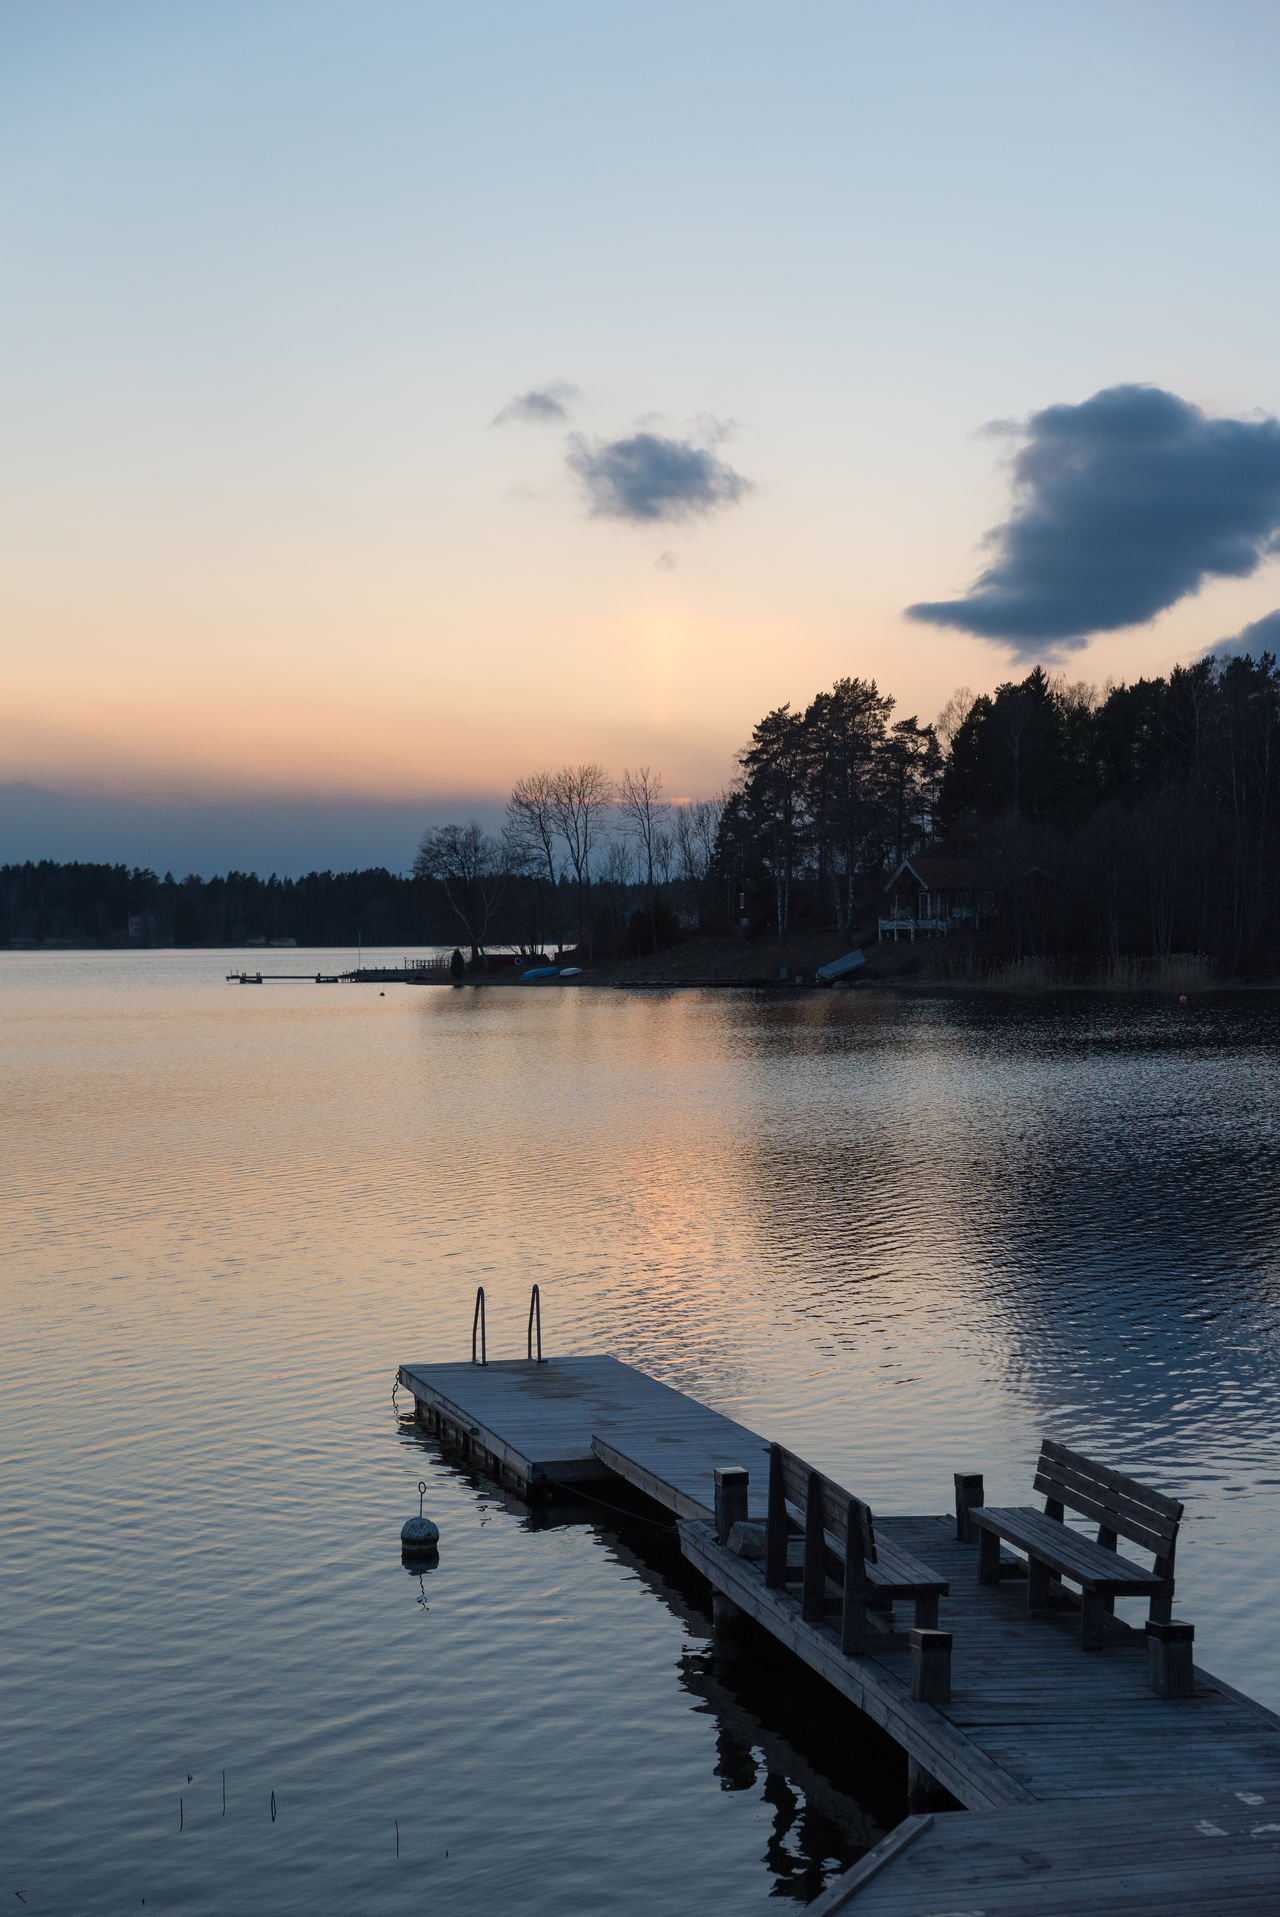 Sunset over a peaceful bay in the Stockholm archipelago. Beauty In Nature Bird Day Jetty Lake Nature No People Outdoors Pier Scenics Silhouette Sky Sunset Tranquil Scene Tranquility Tree Water